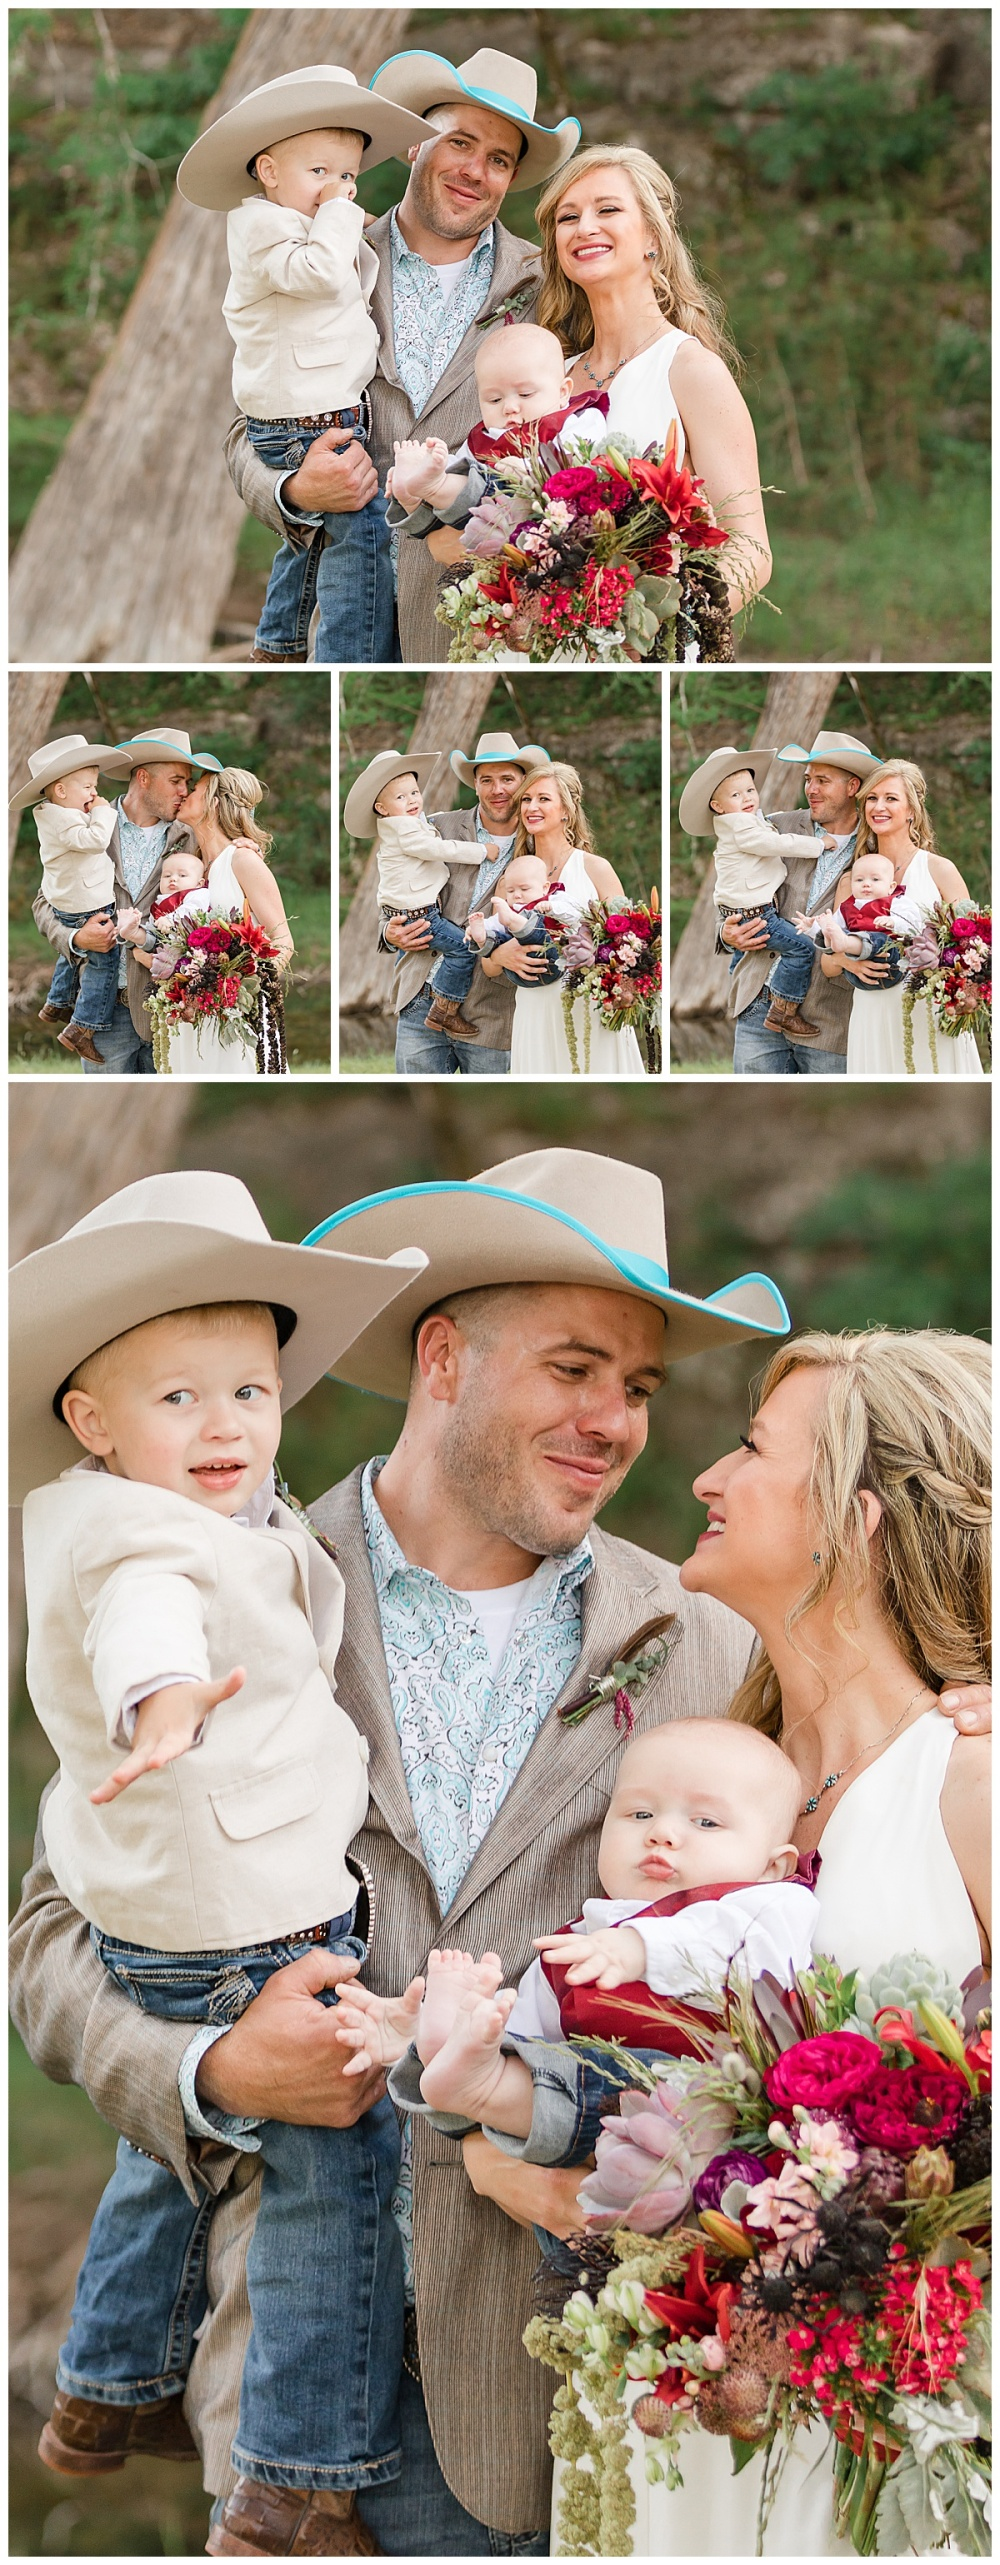 Eagle-Dancer-Ranch-Boerne-Texas-Wedding-Party-Barn-Carly-Barton-Photography_0040.jpg